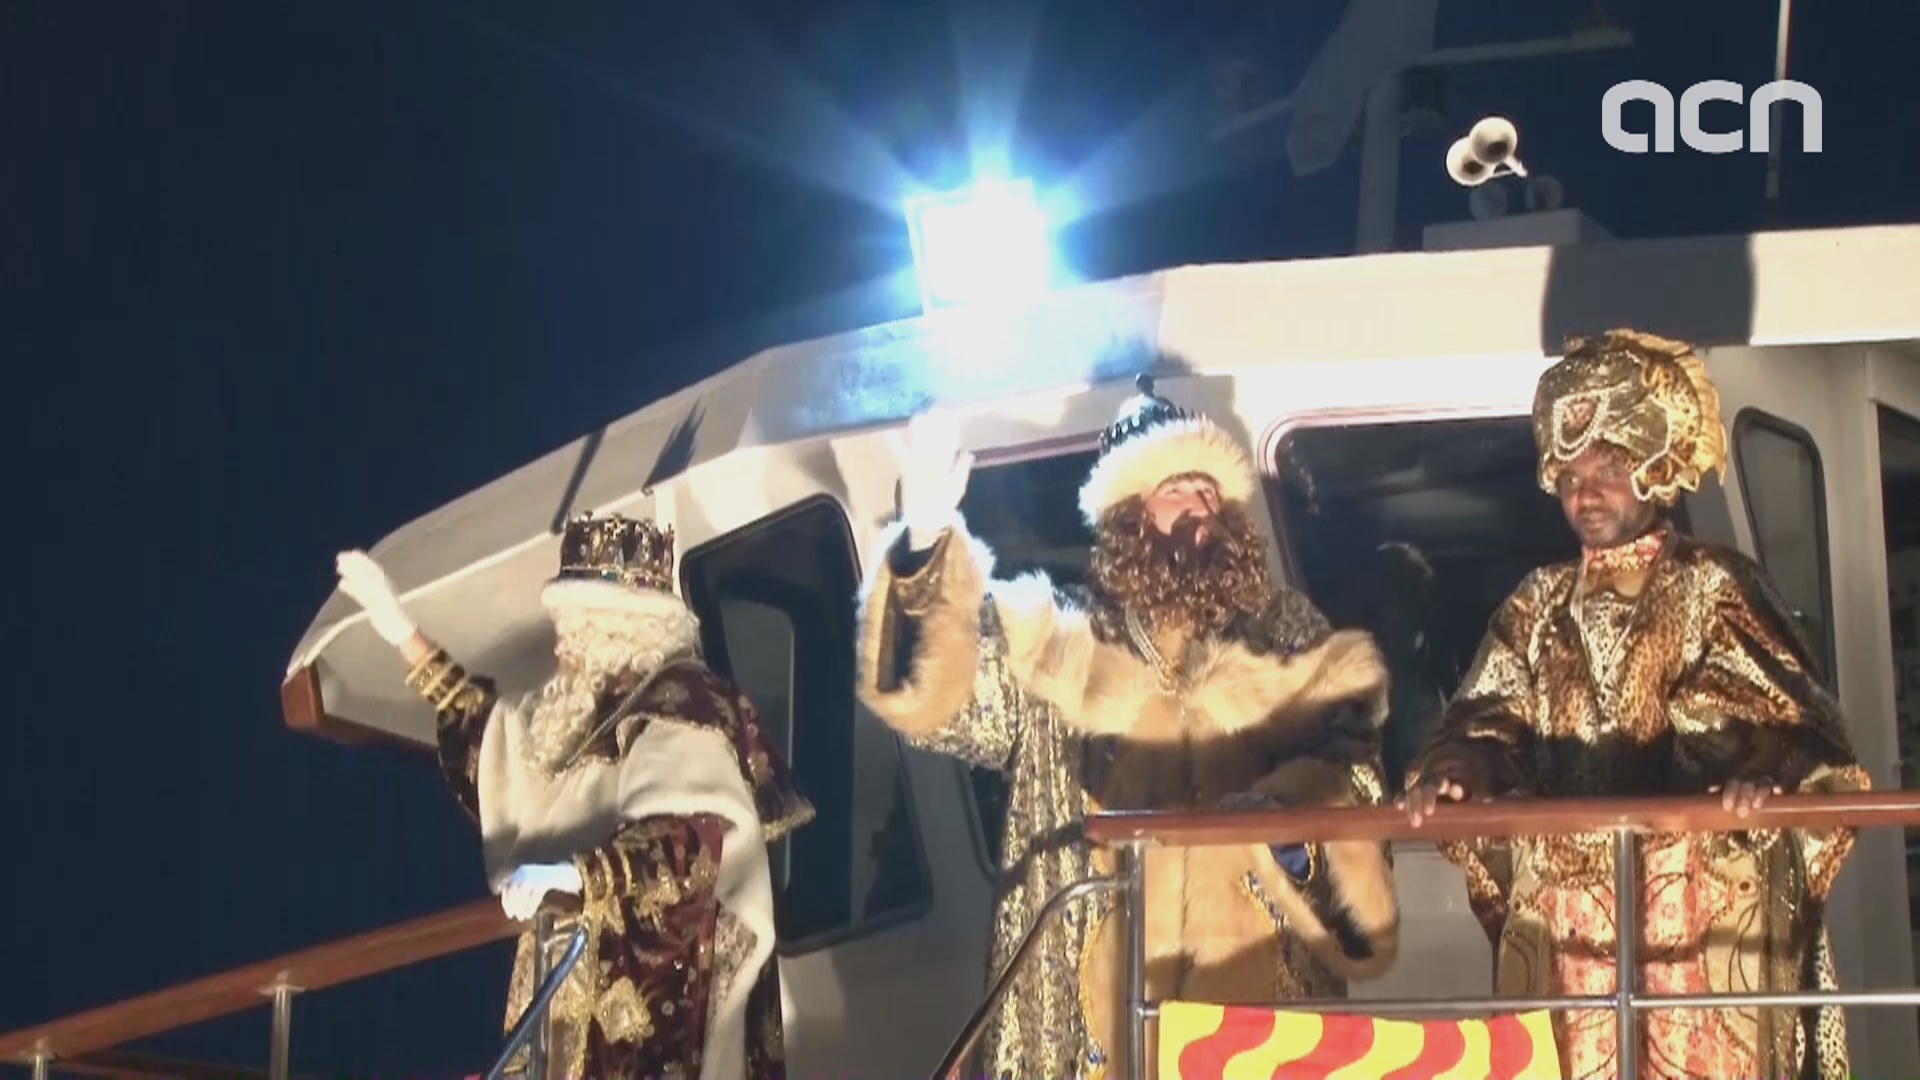 The Three Kings disembark full of presents for Catalan kids